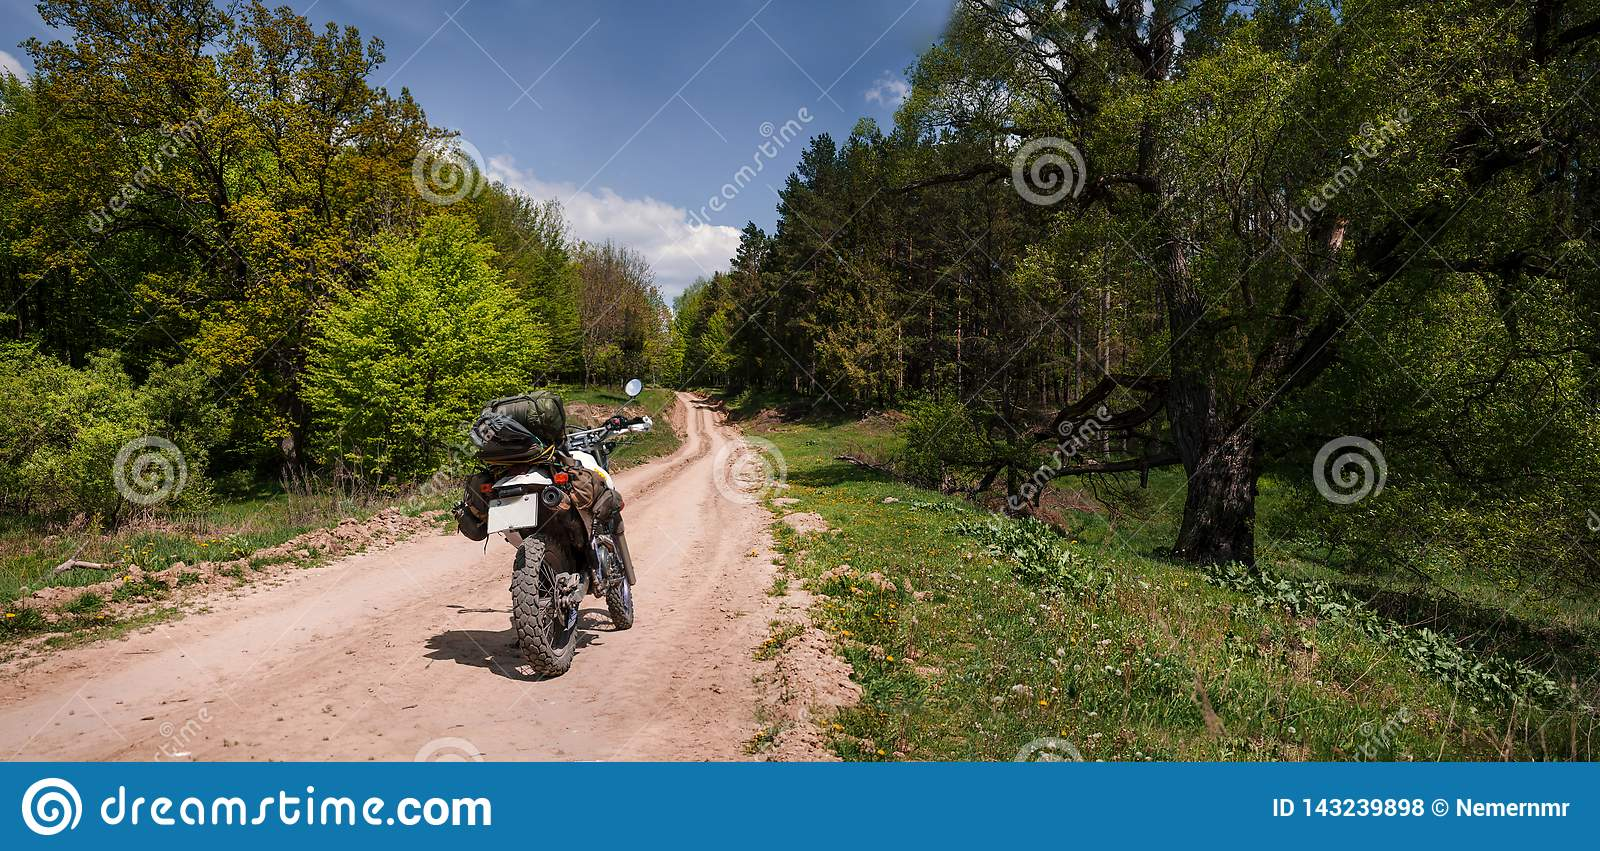 Adventure motorcycle on dirt forest road, enduro, active lifestyle, travel lover concept